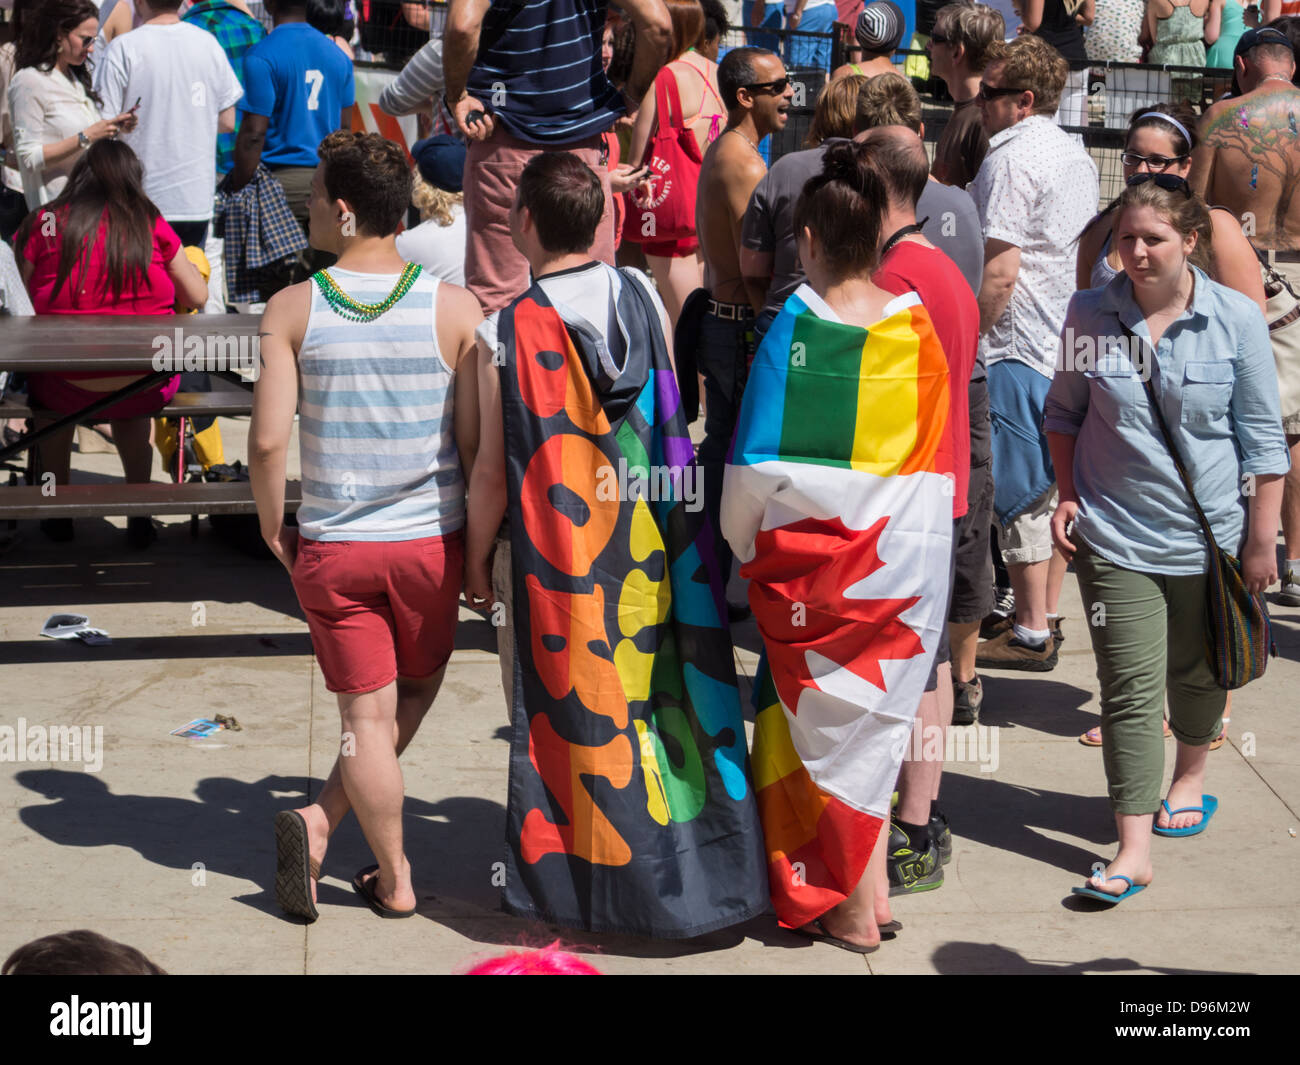 05562fb2dfc7 person wearing Canadian flag with pride colors at Edmonton Pride Festival